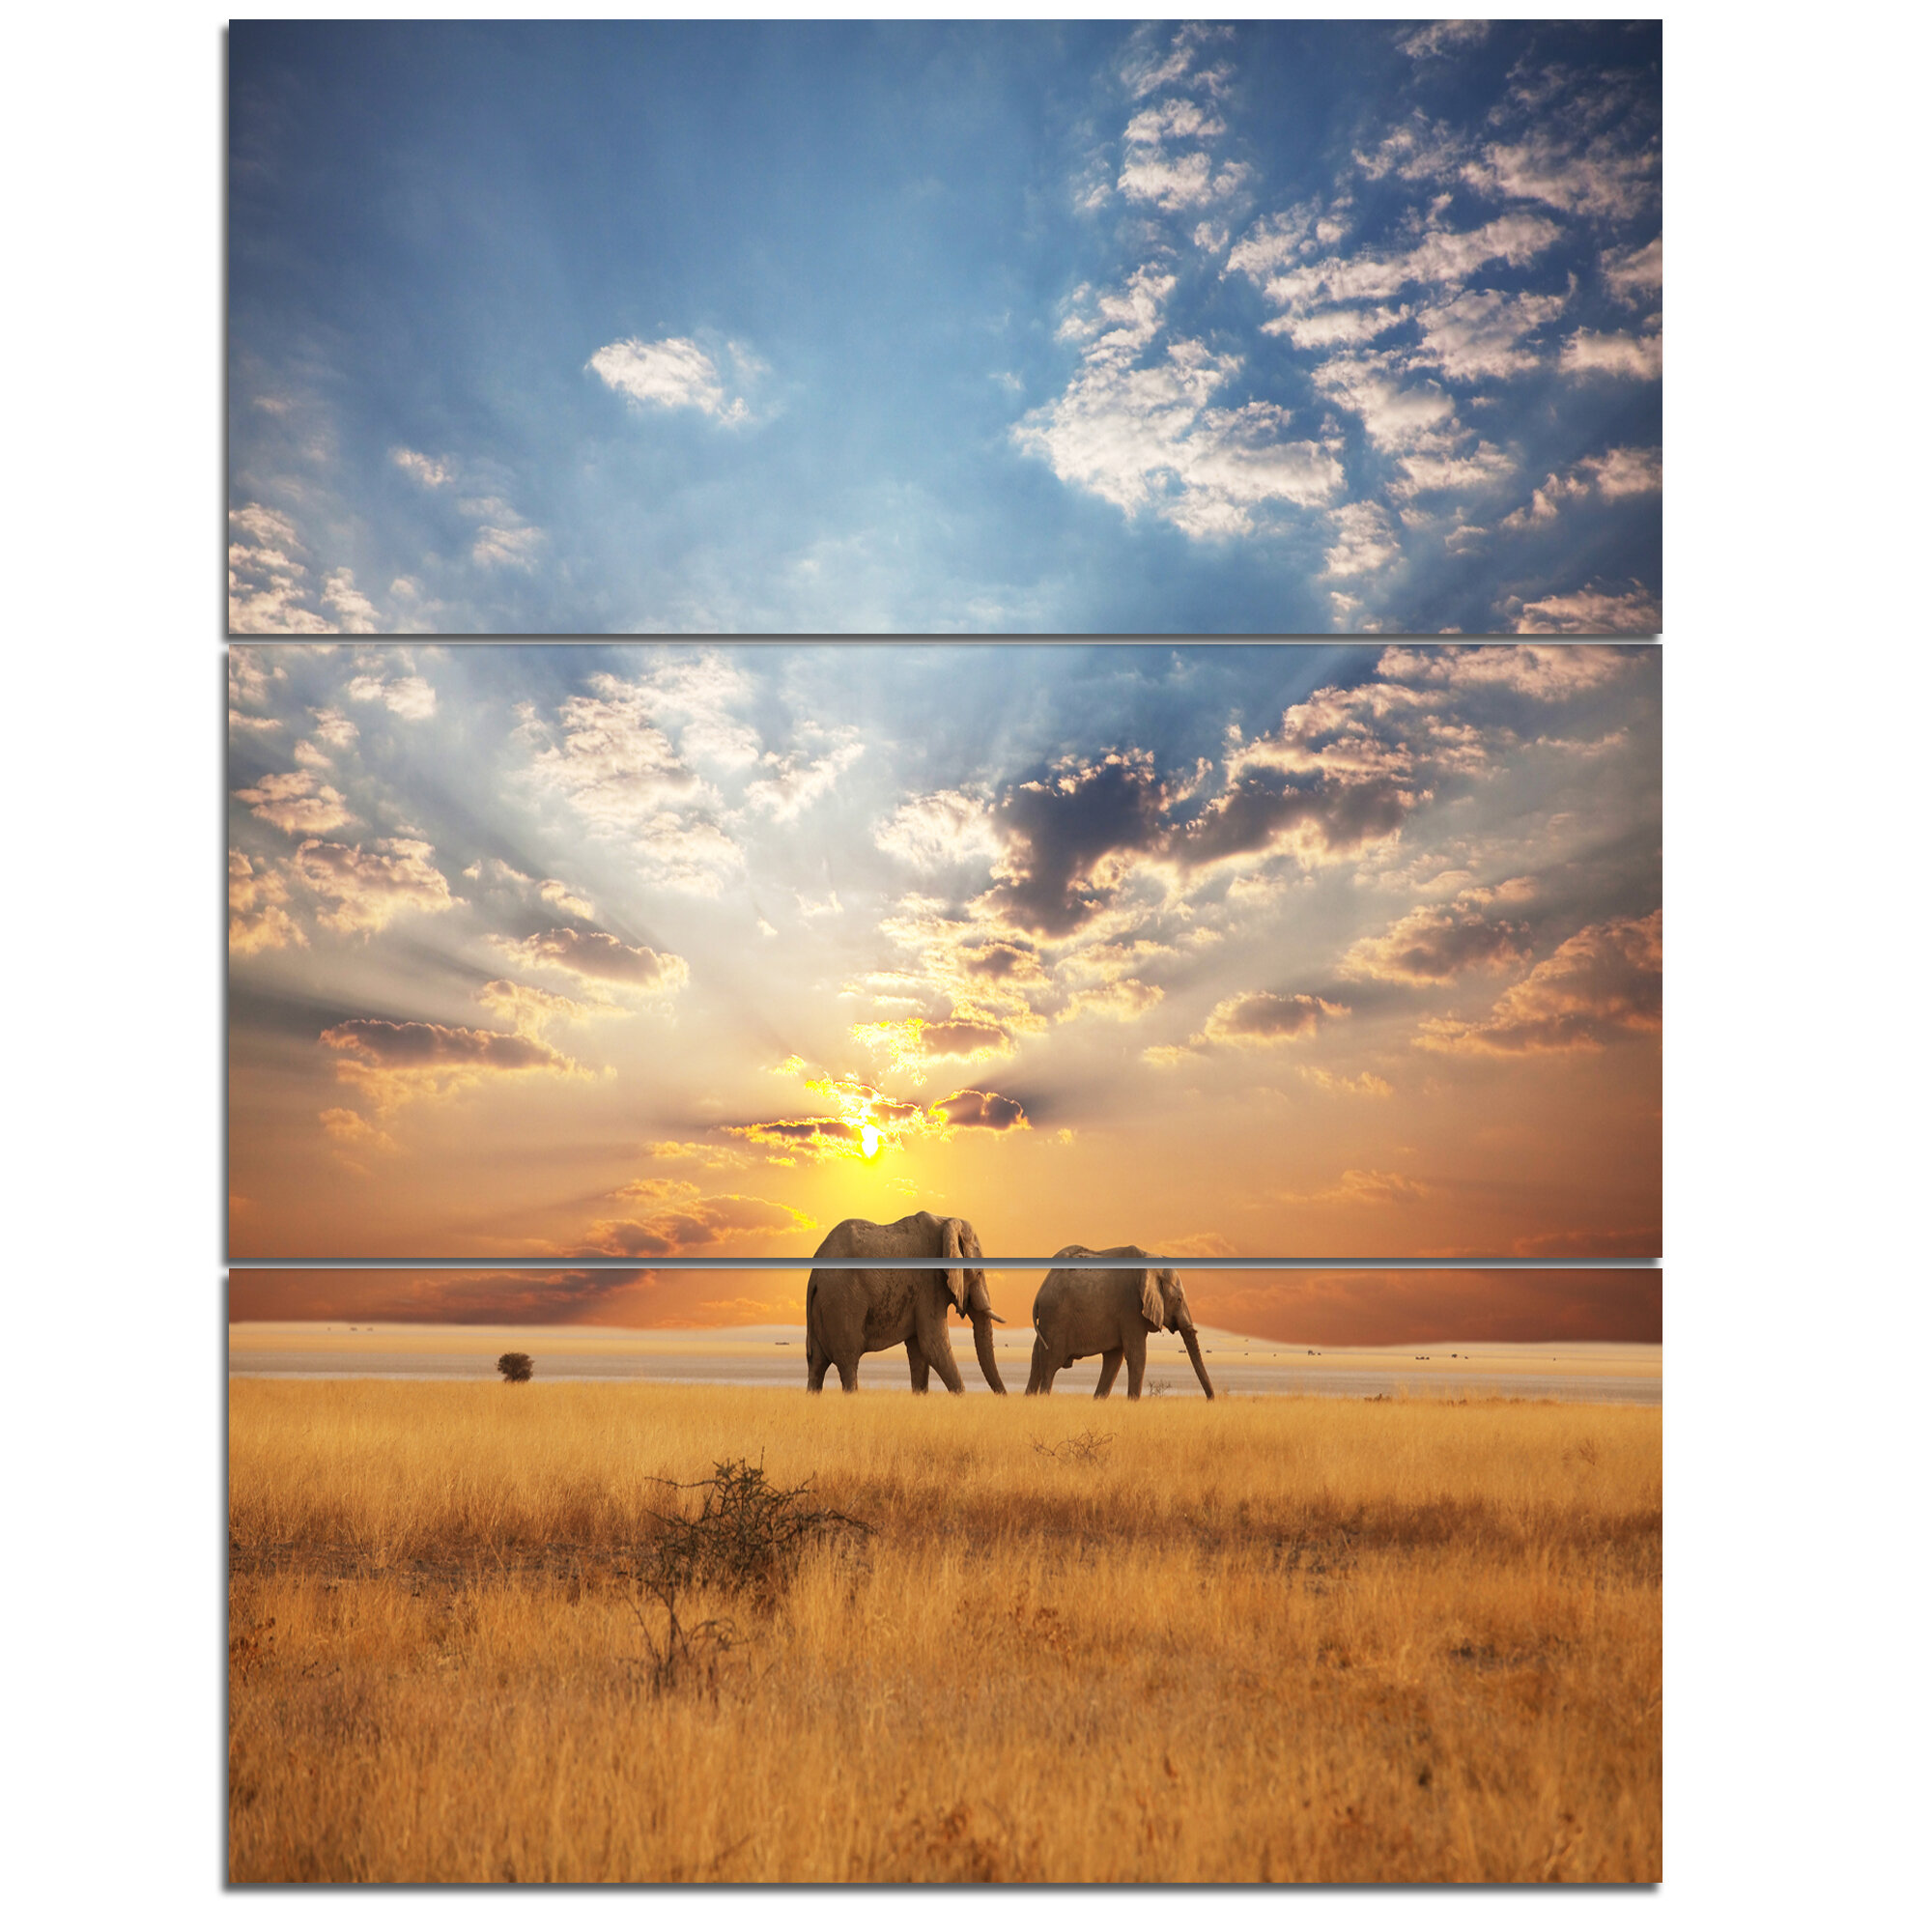 Designart Elephants Walking Along River Bank 3 Piece Photographic Print On Wrapped Canvas Set Wayfair